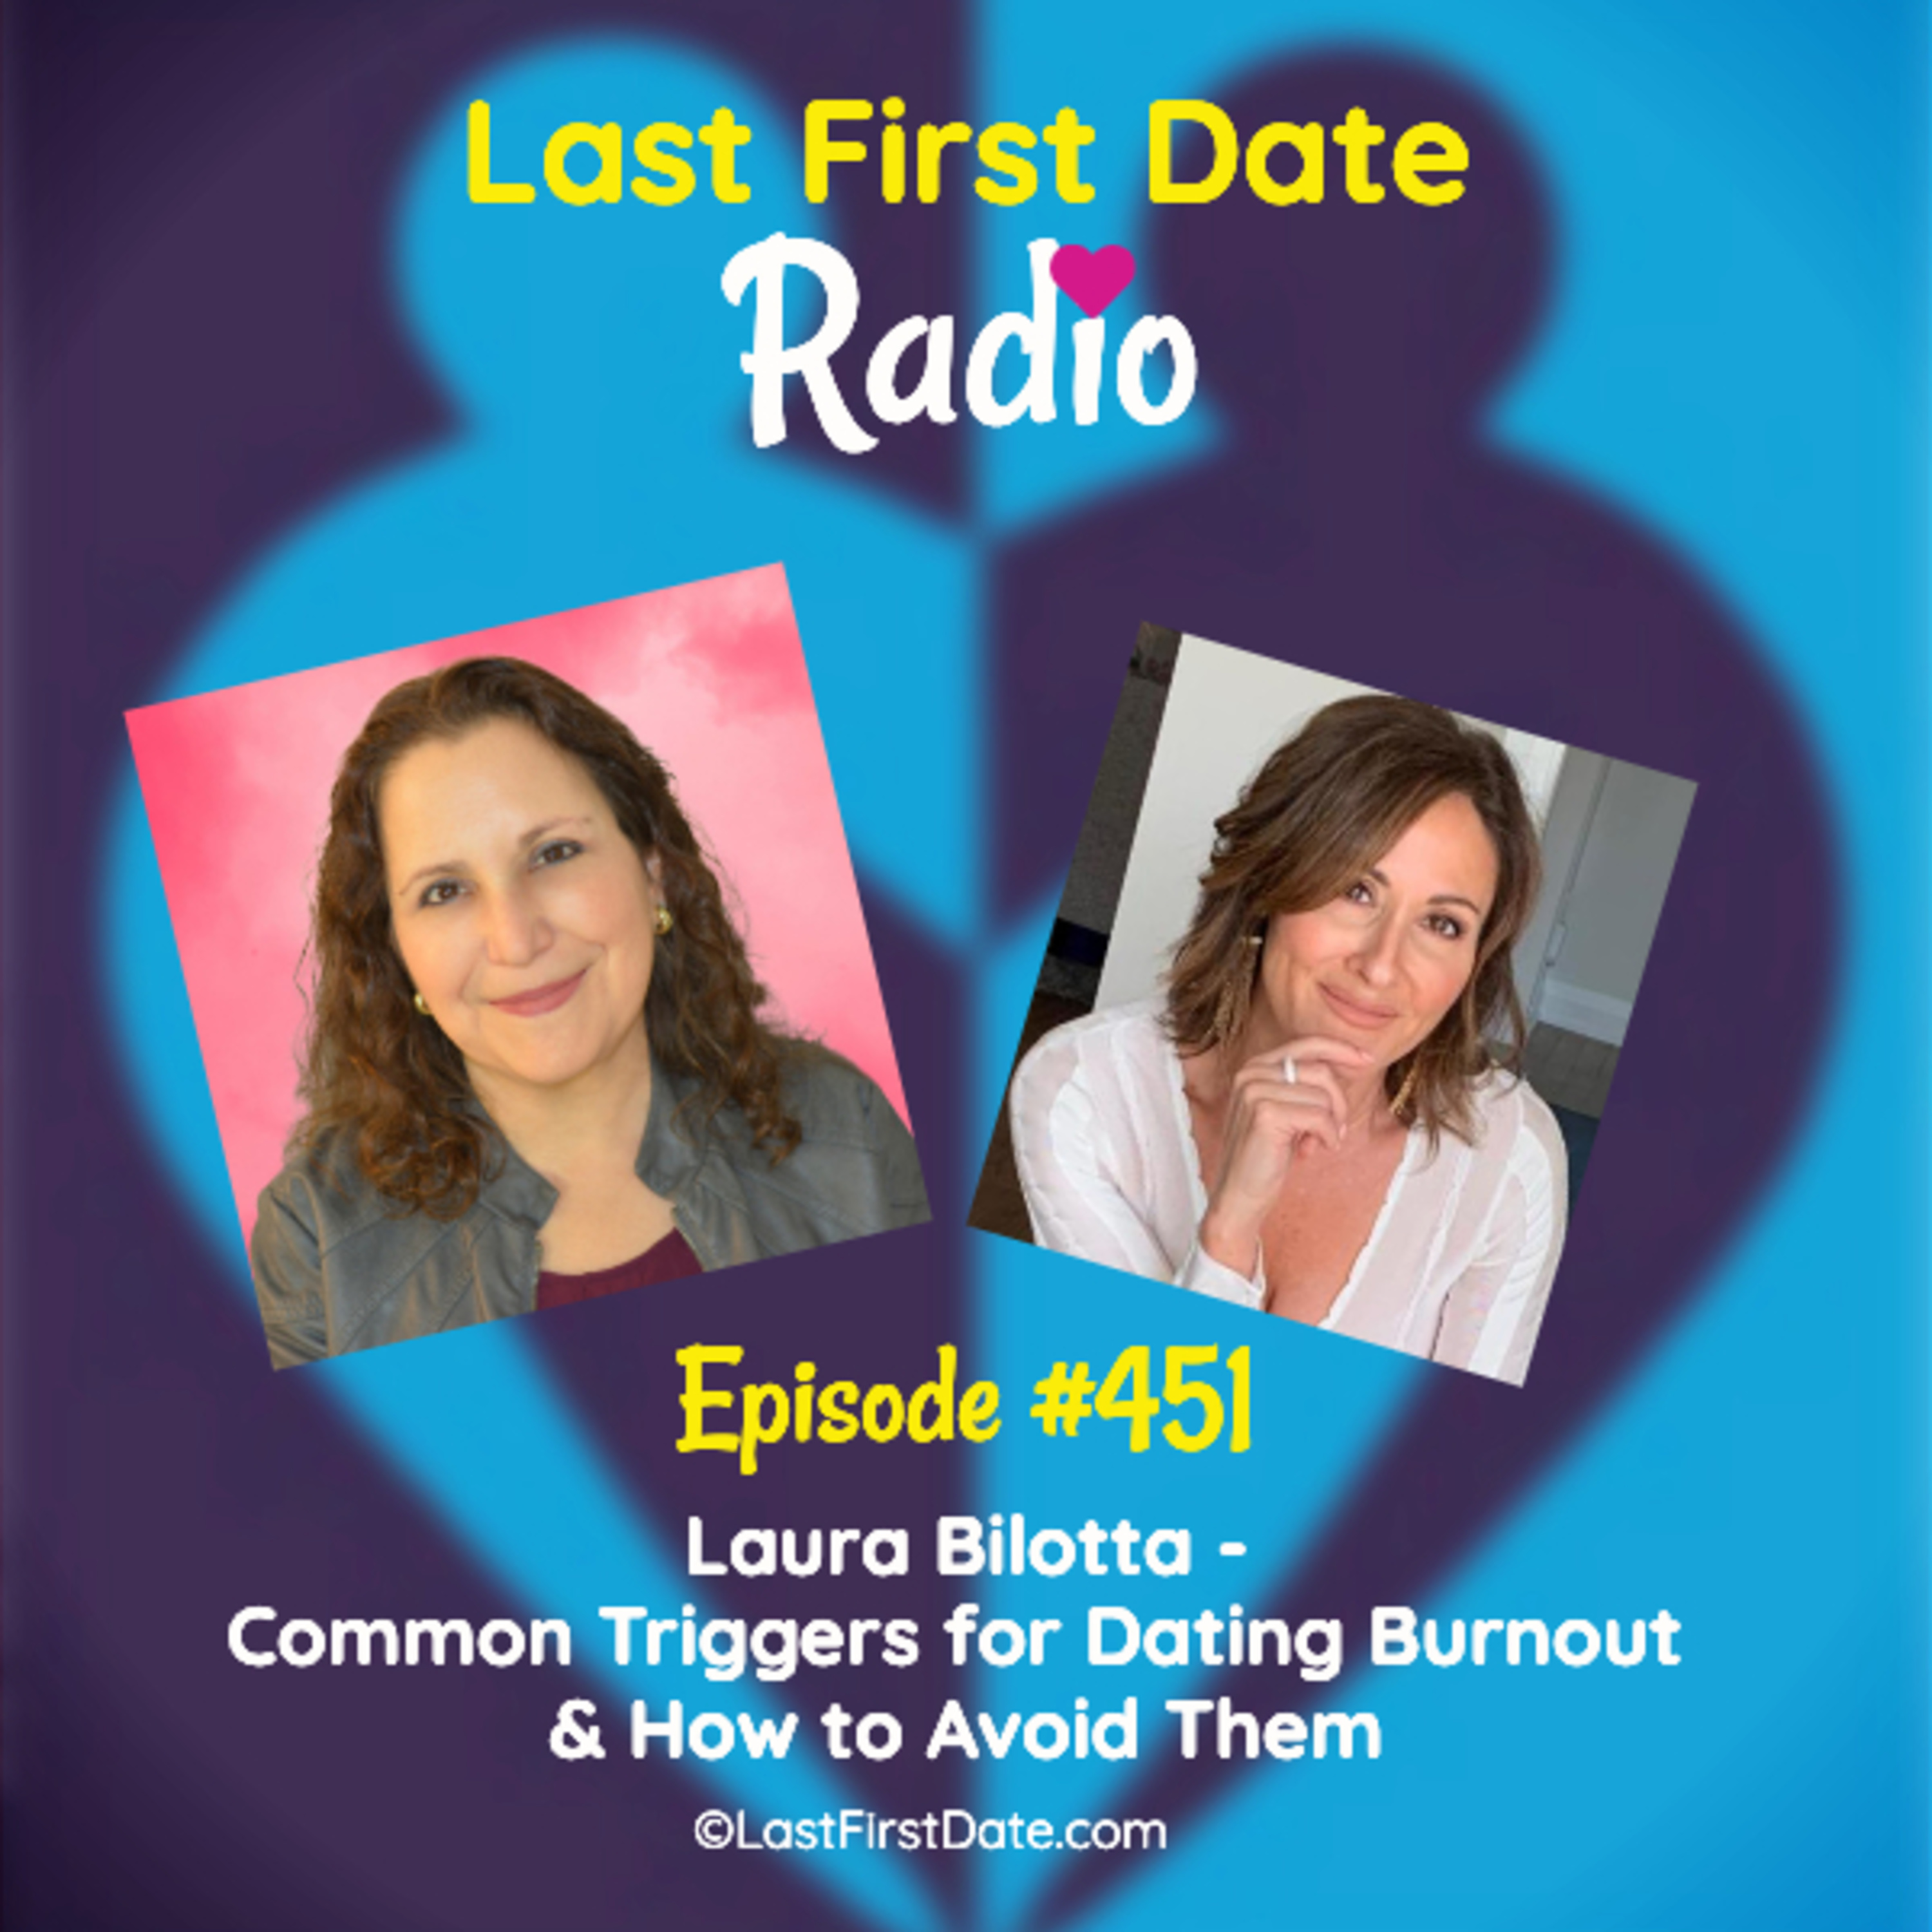 Last First Date Radio - EP 451: Laura Bilotta - Common Triggers for Dating Burnout & How to Avoid Them